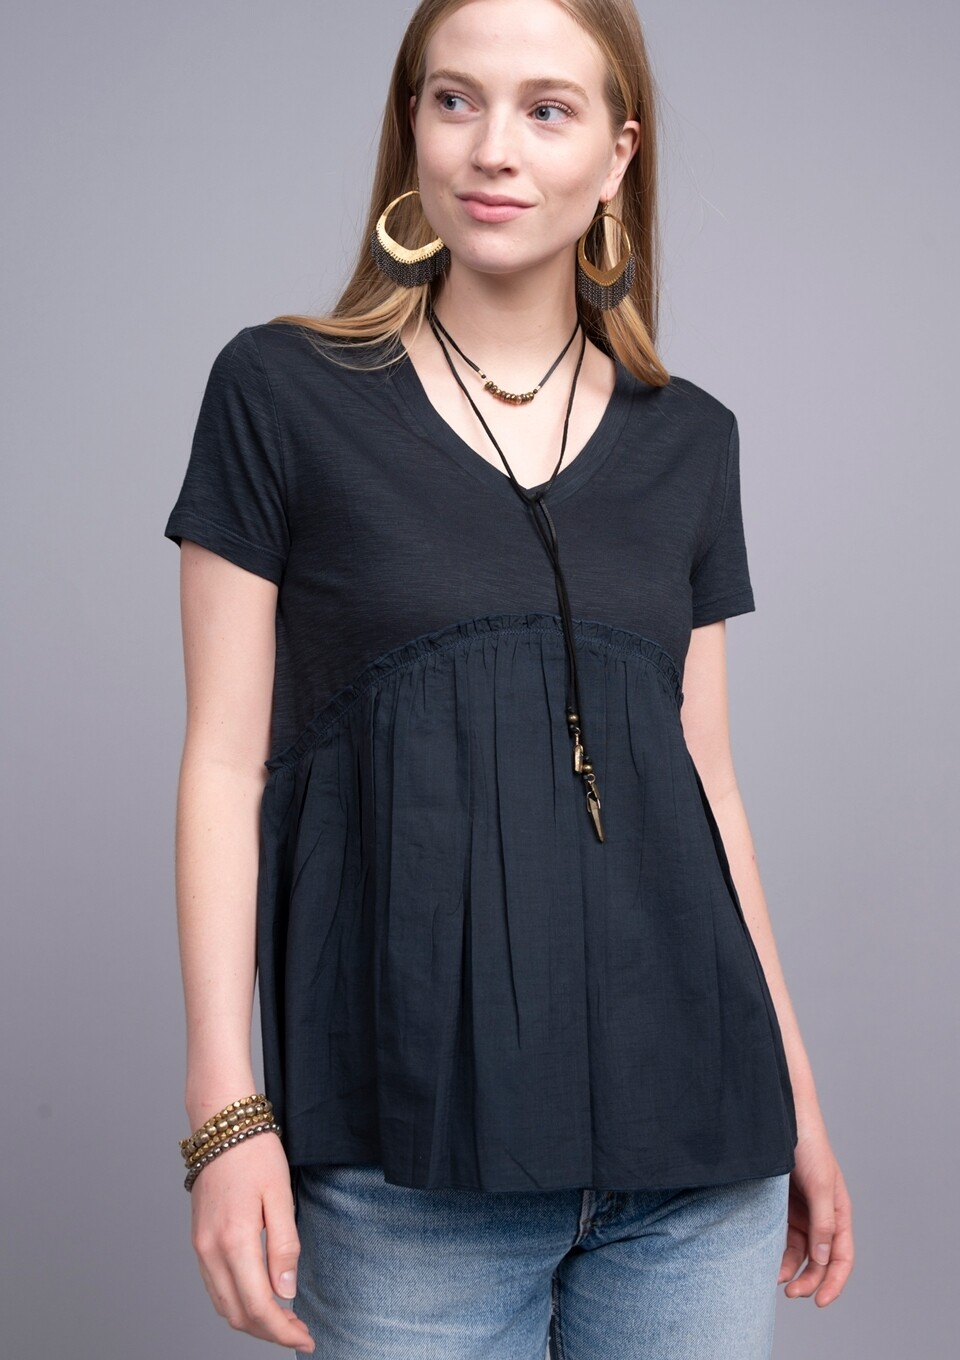 Baby Doll Top Black